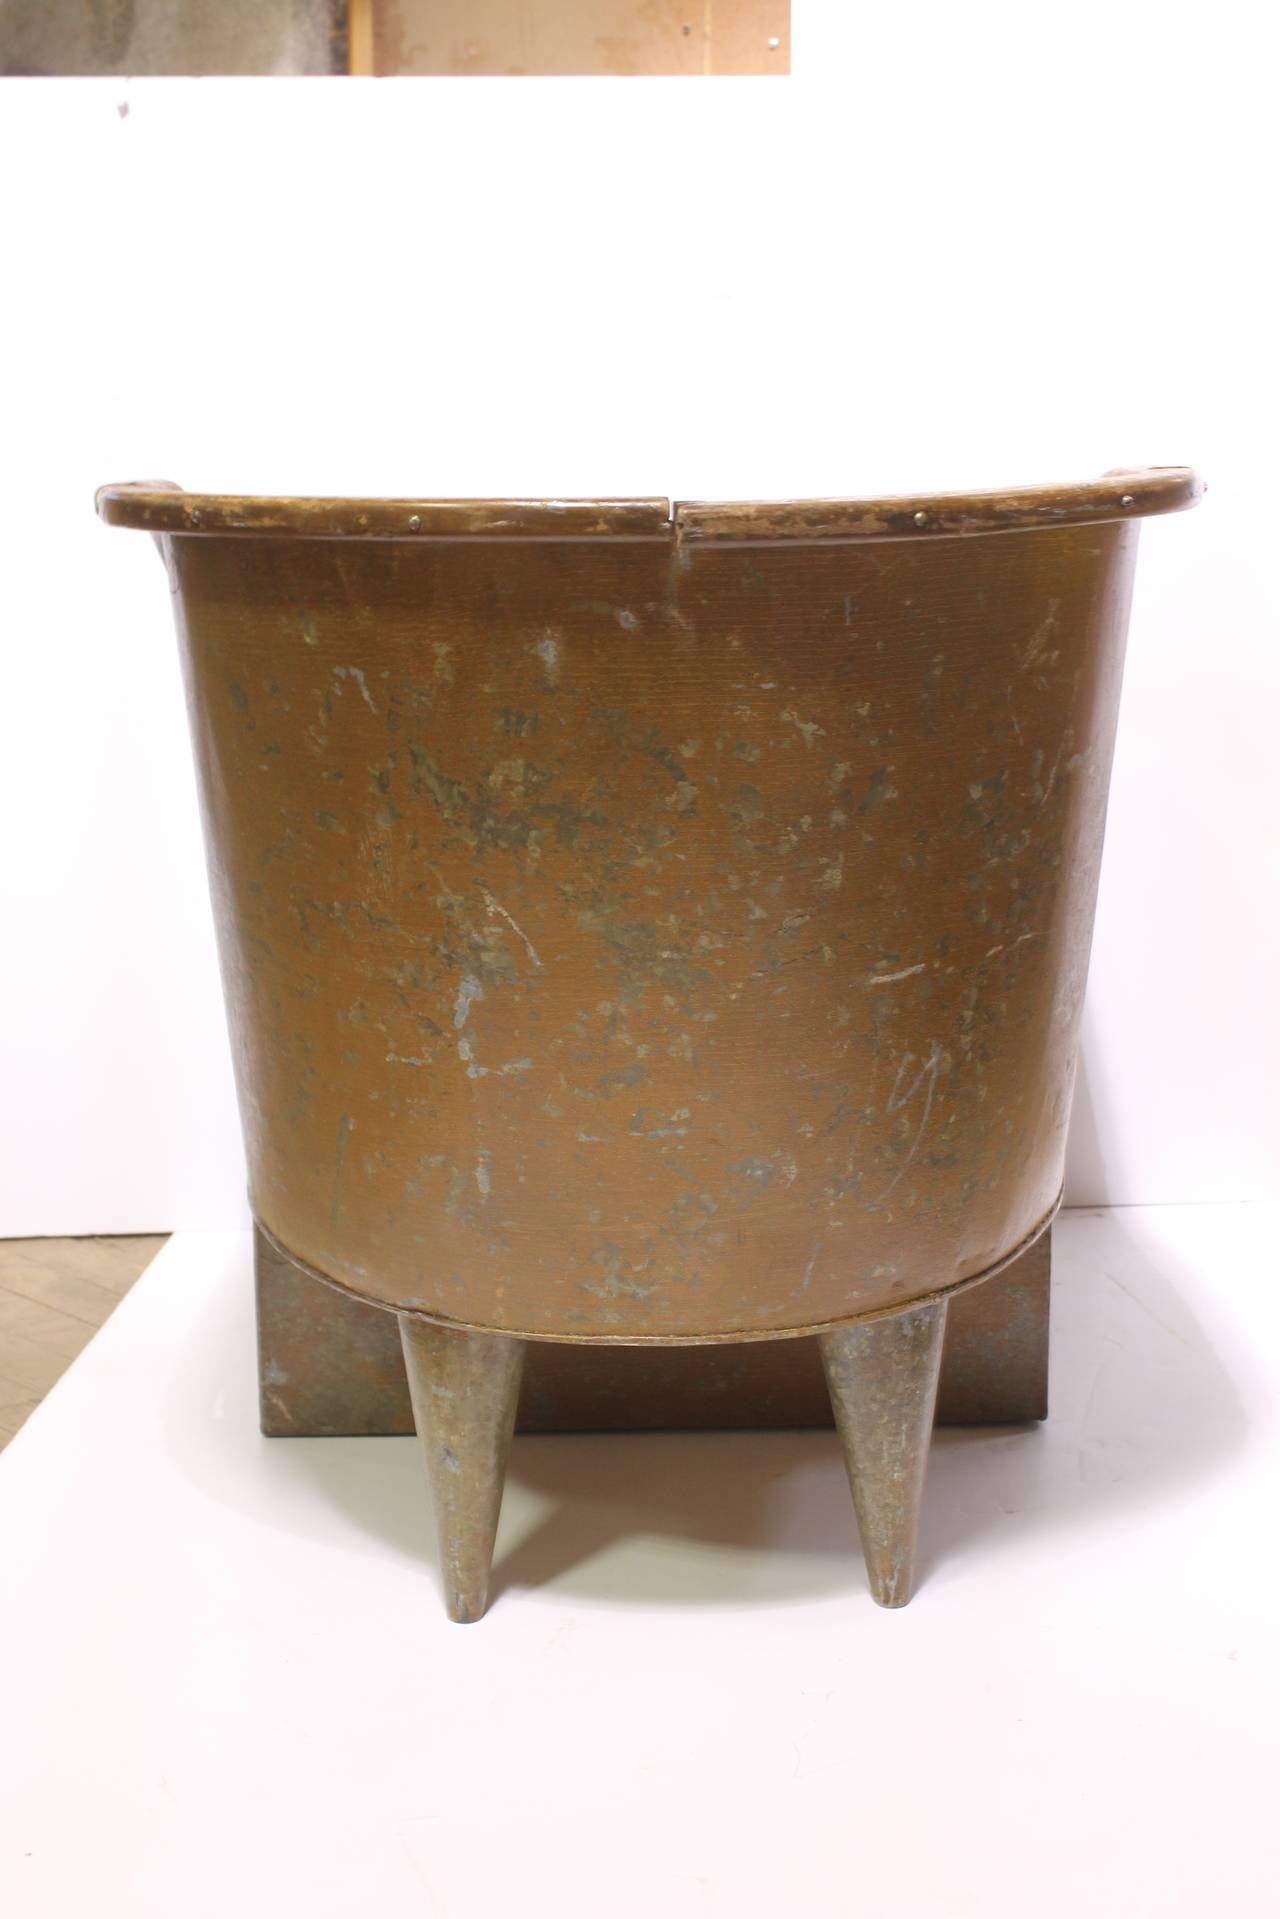 Tin bathtub 28 images antique c 1880victorian tin for Old tin baths for sale